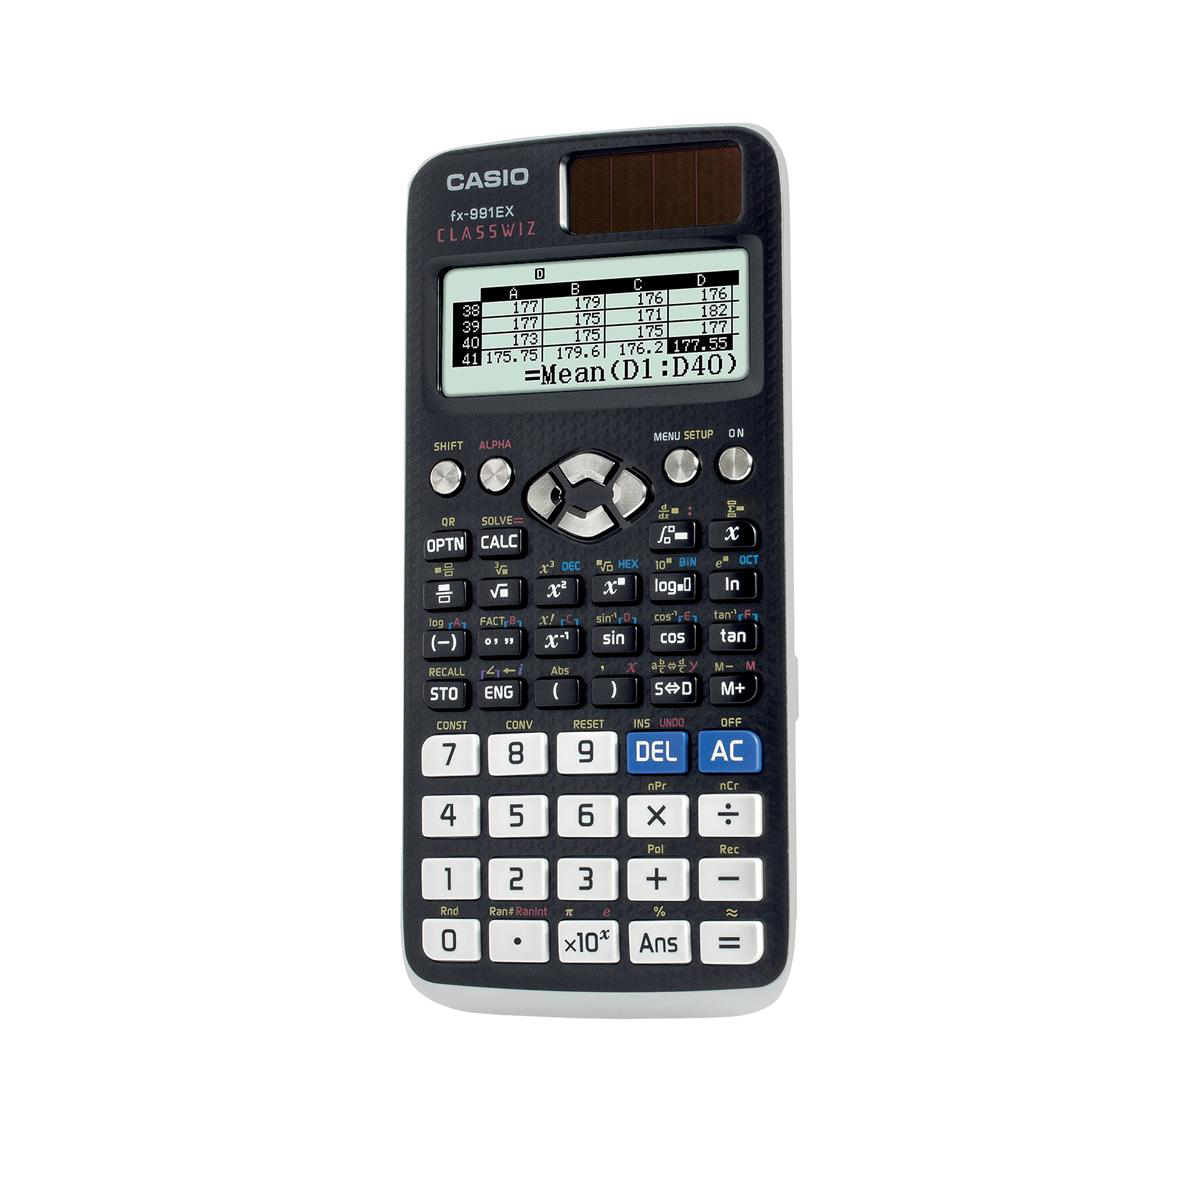 Scientific Calculator Casio Scientific Calculator Natural Display 552 Functions 77x11x165mm Graphite Ref FX-991EX